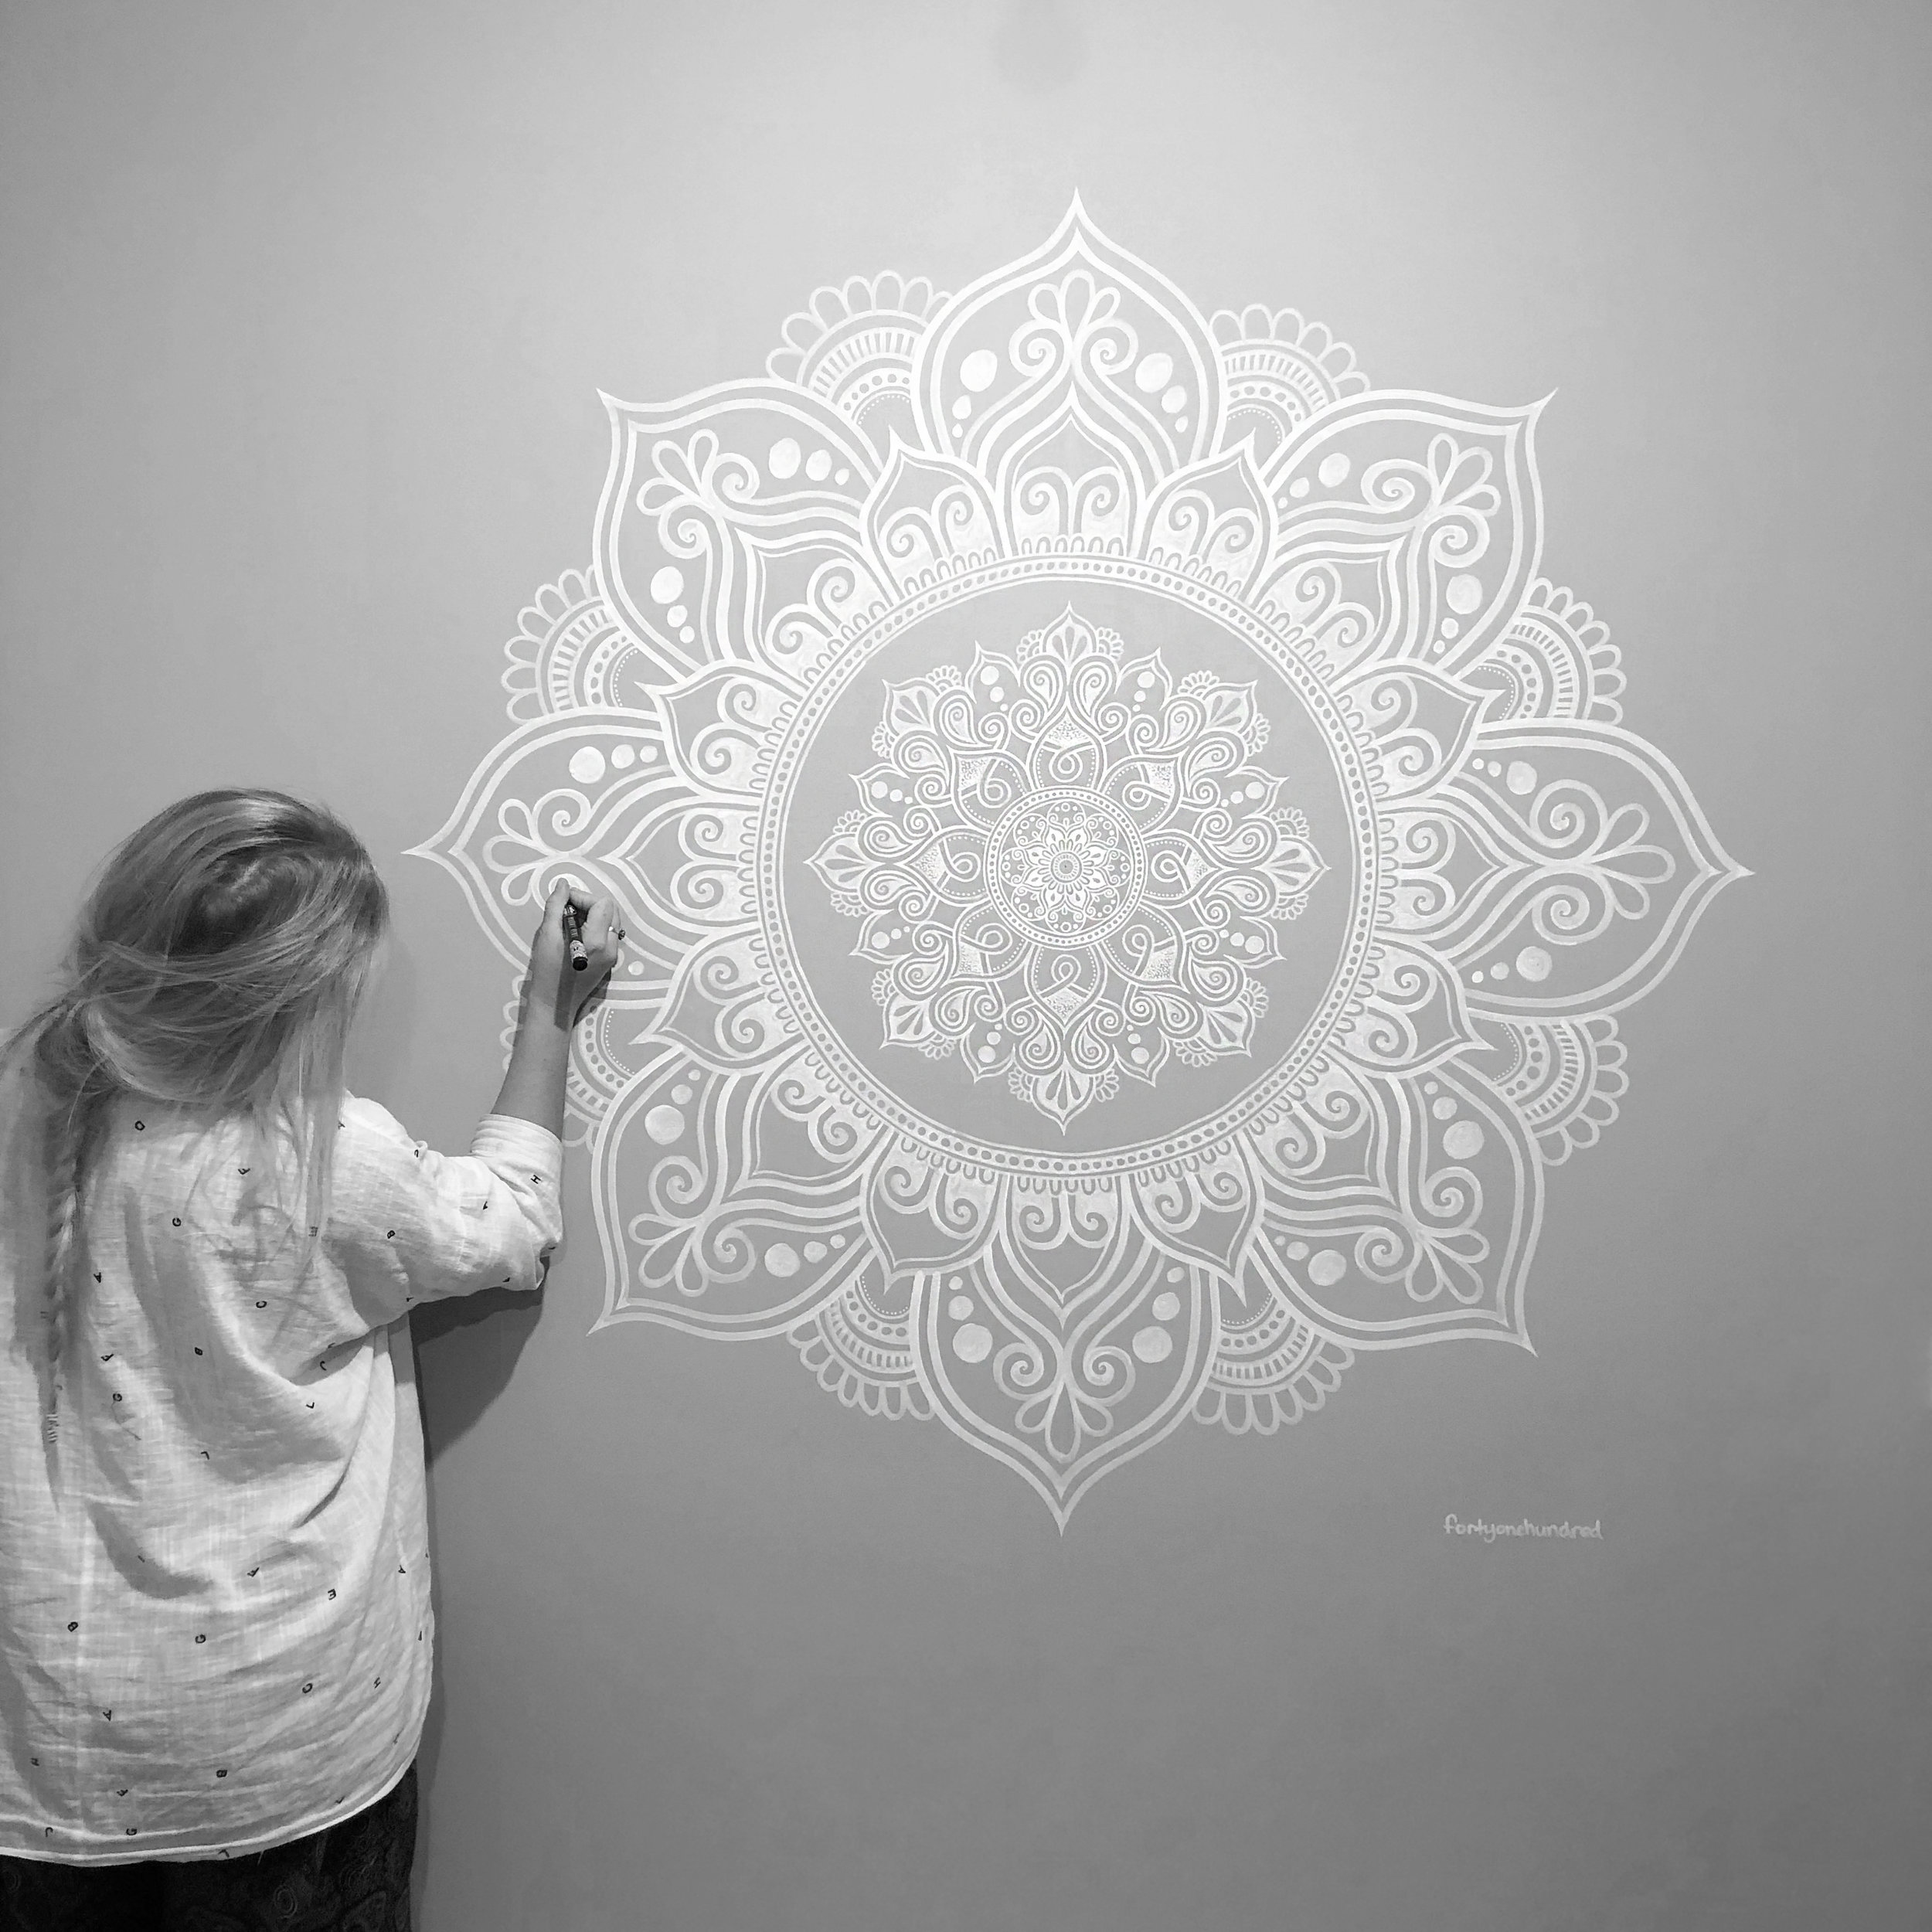 fortyonehundred-mandala-mural-white-on-grey.jpg